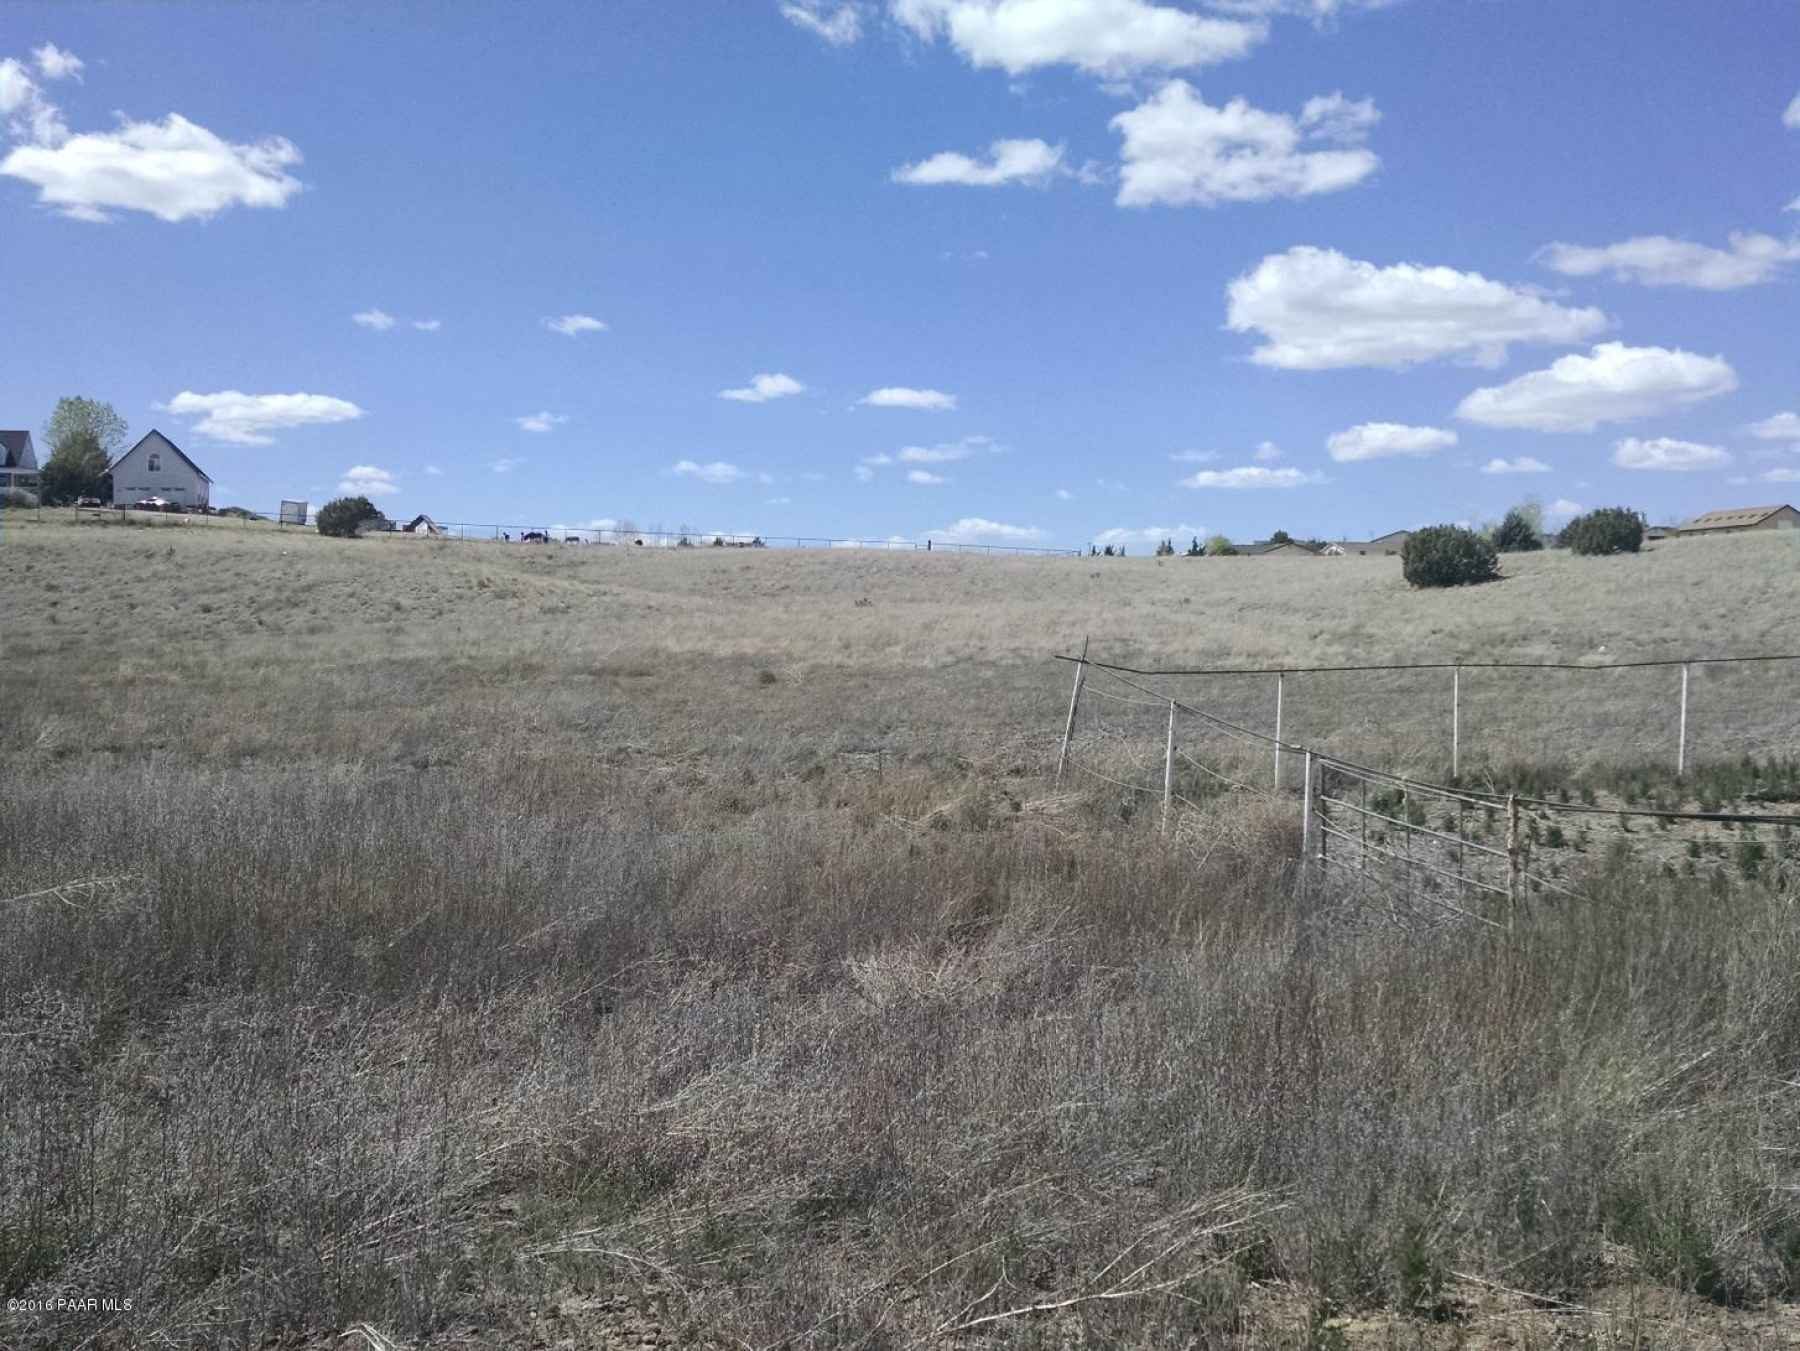 ChinoValley.Looking from LowerArea(SE) u